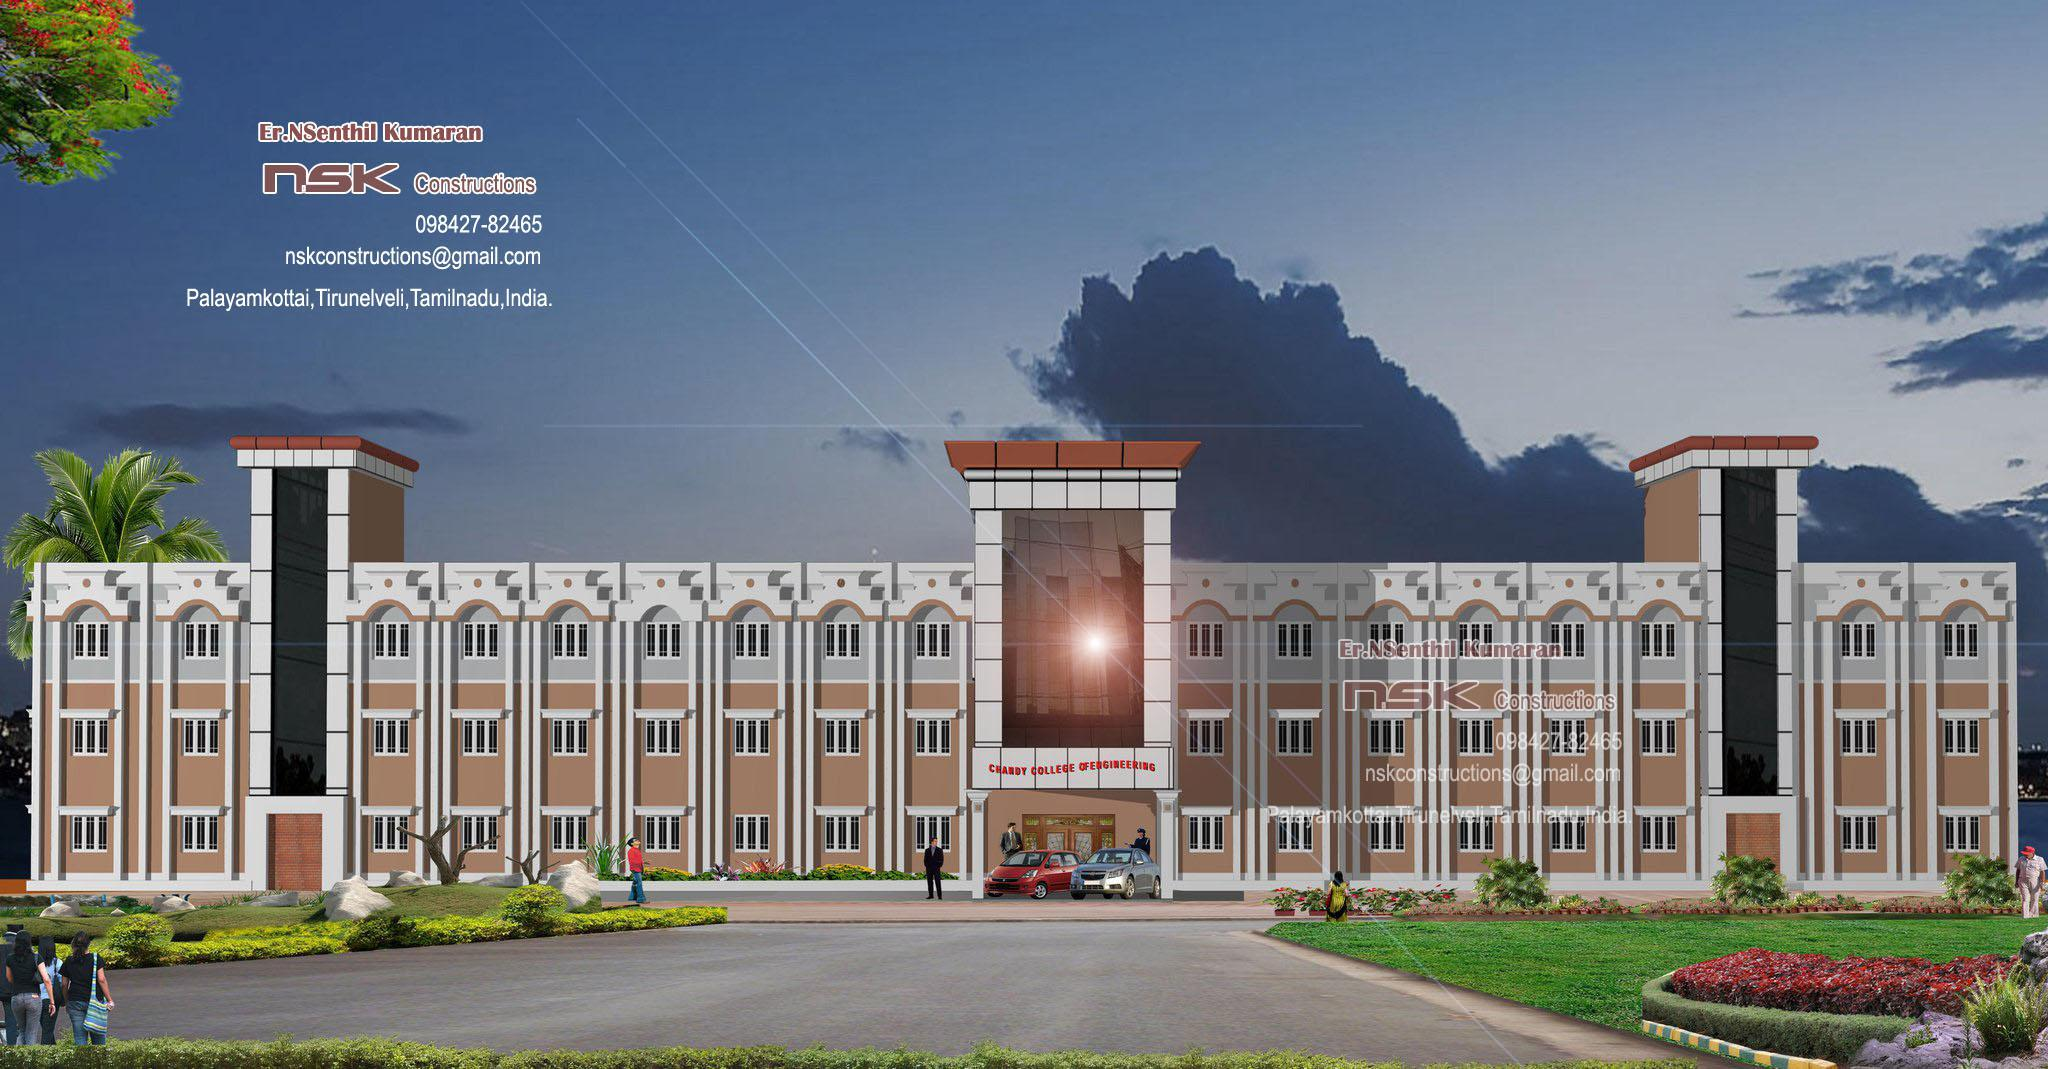 Elevation of college building